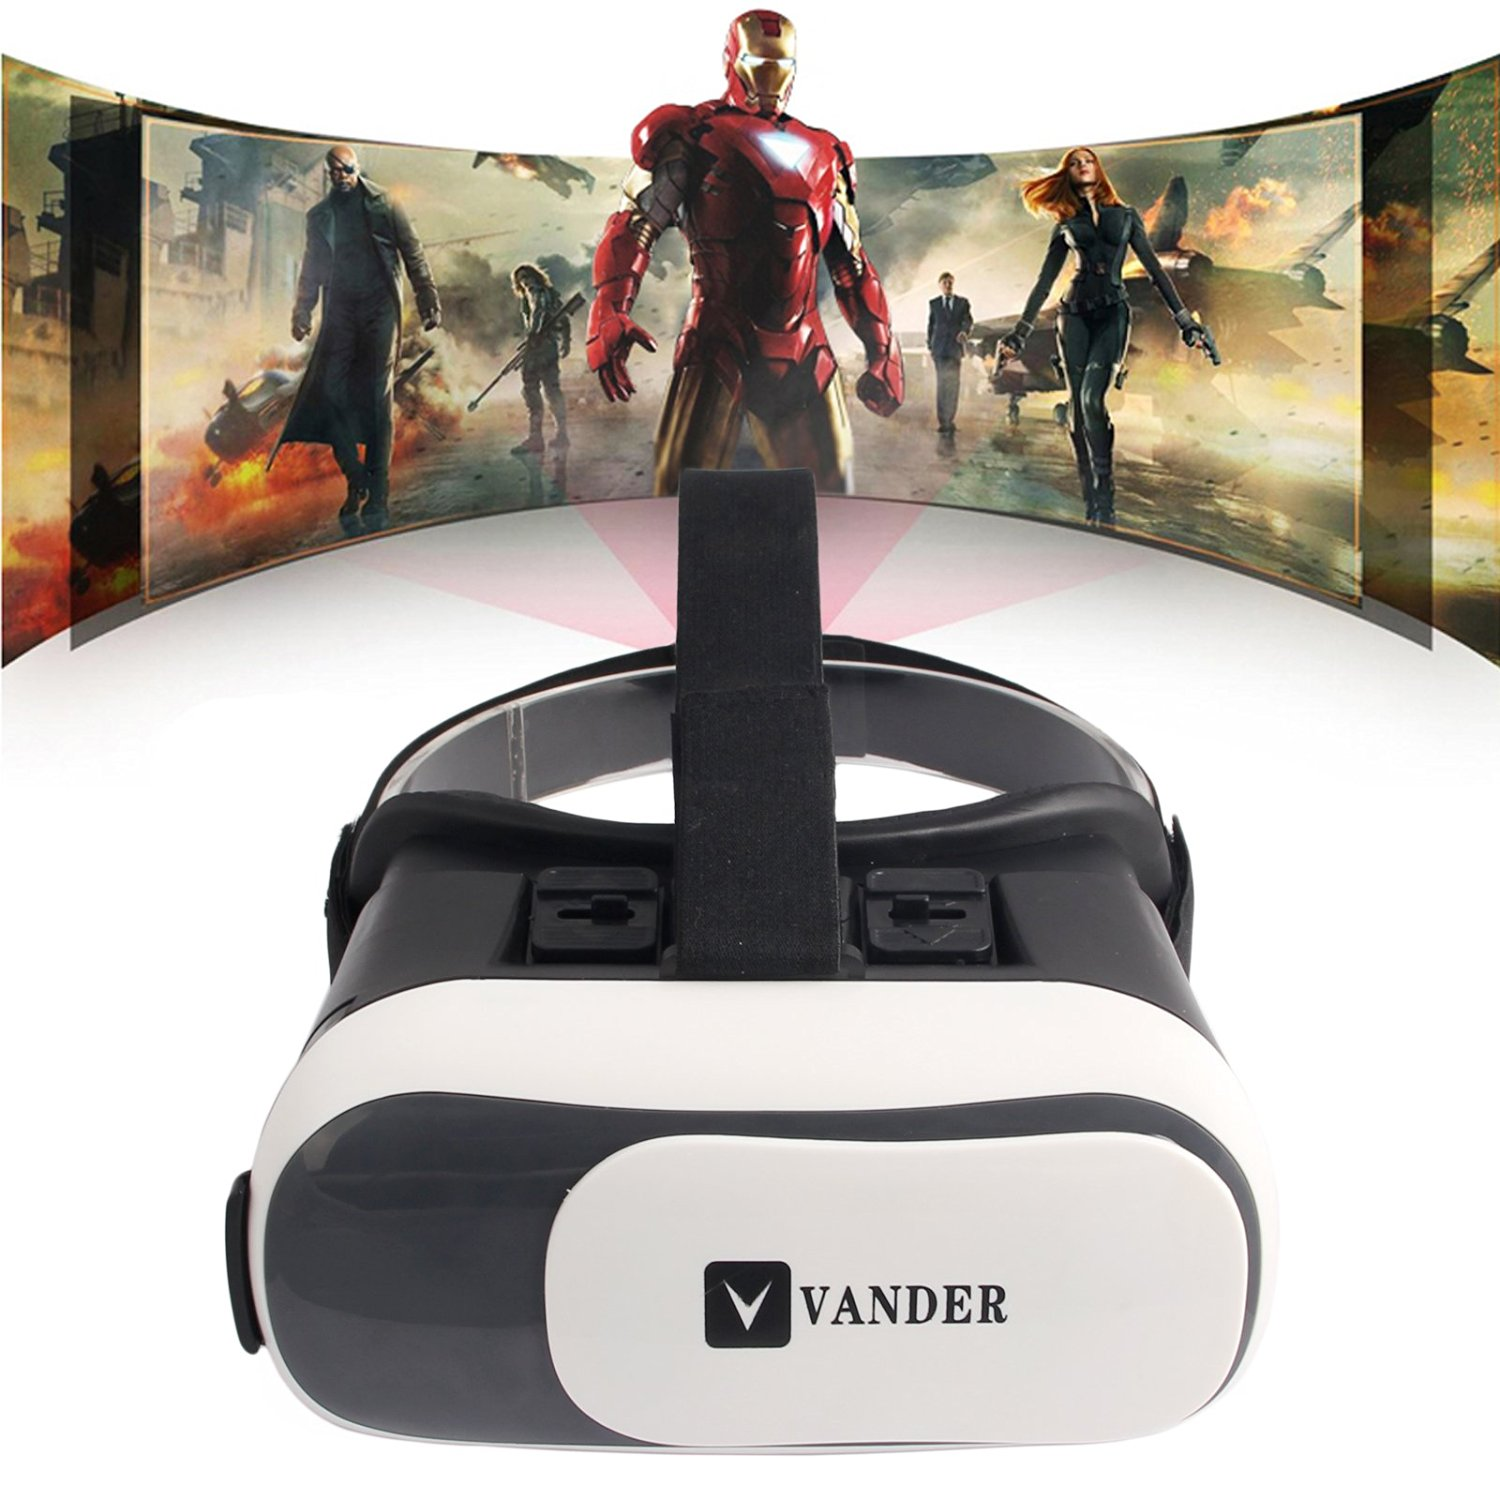 Vander VR Box 2.0,3D VR Virtual Reality GlVR Headset 3D Glasses VR Box 2.0 Virtual Reality with Adjustable Lens and Strap for 4.0-6.0 inch Smart phones iPhone VR Box for 3D Movies and Games